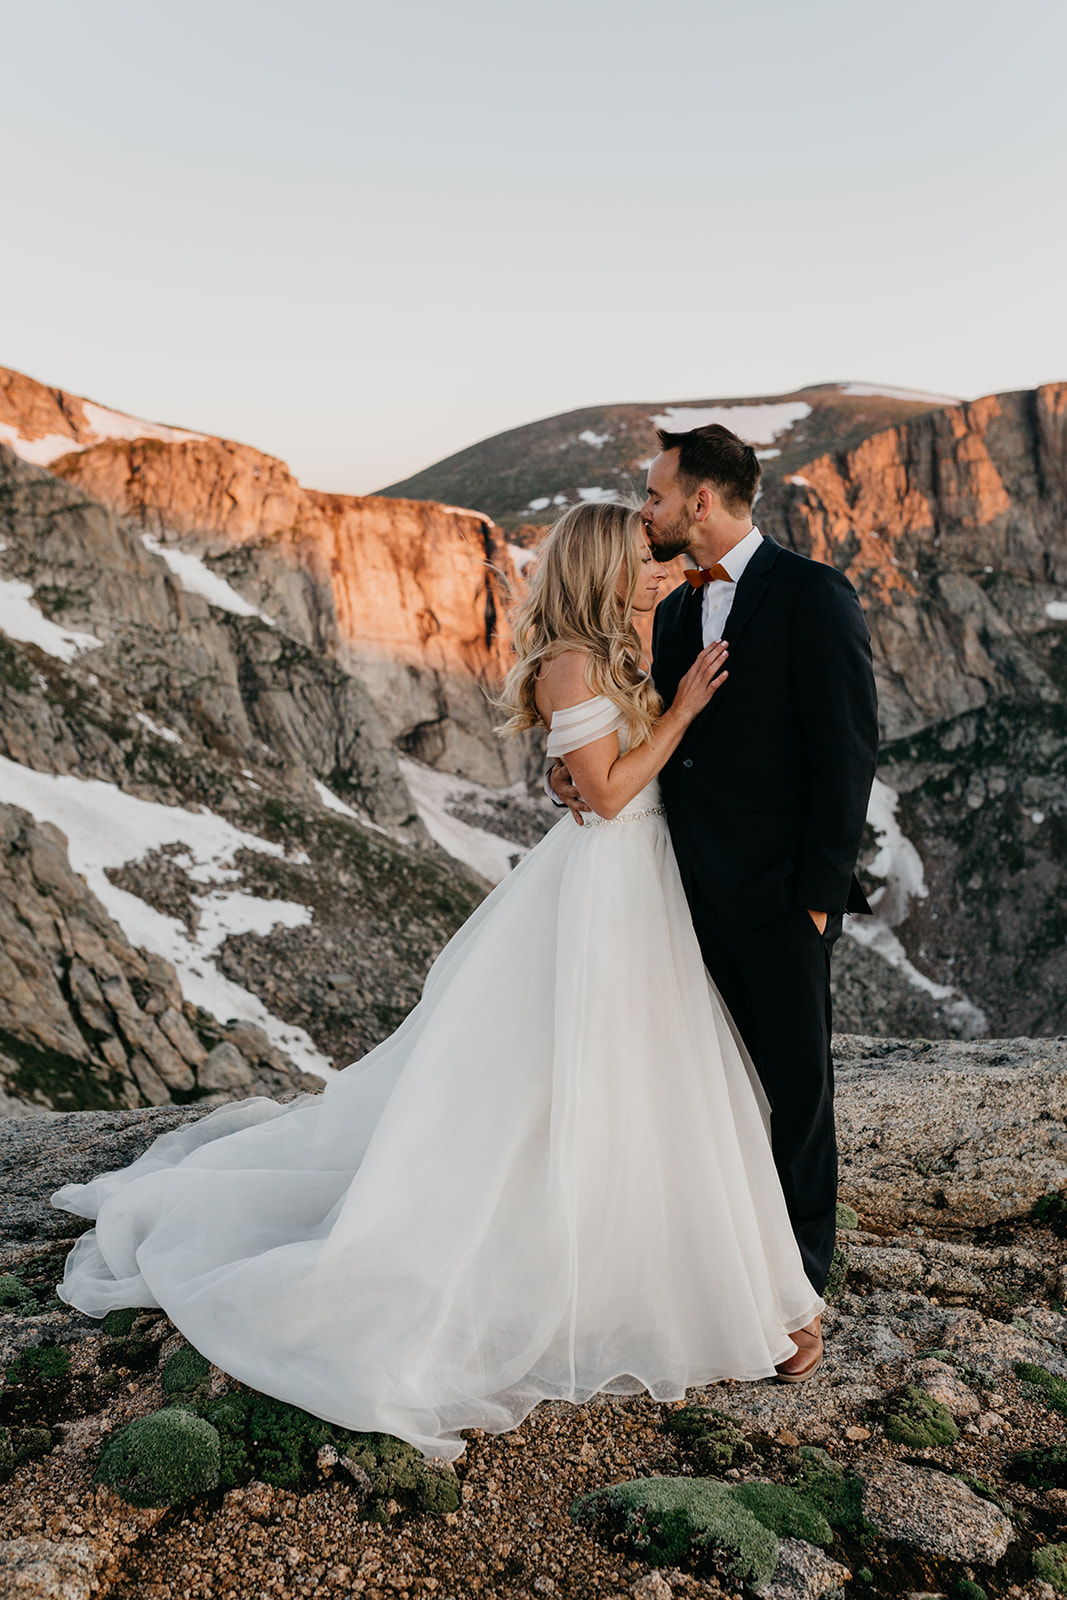 Bride and groom kissing at their rocky mountain wedding